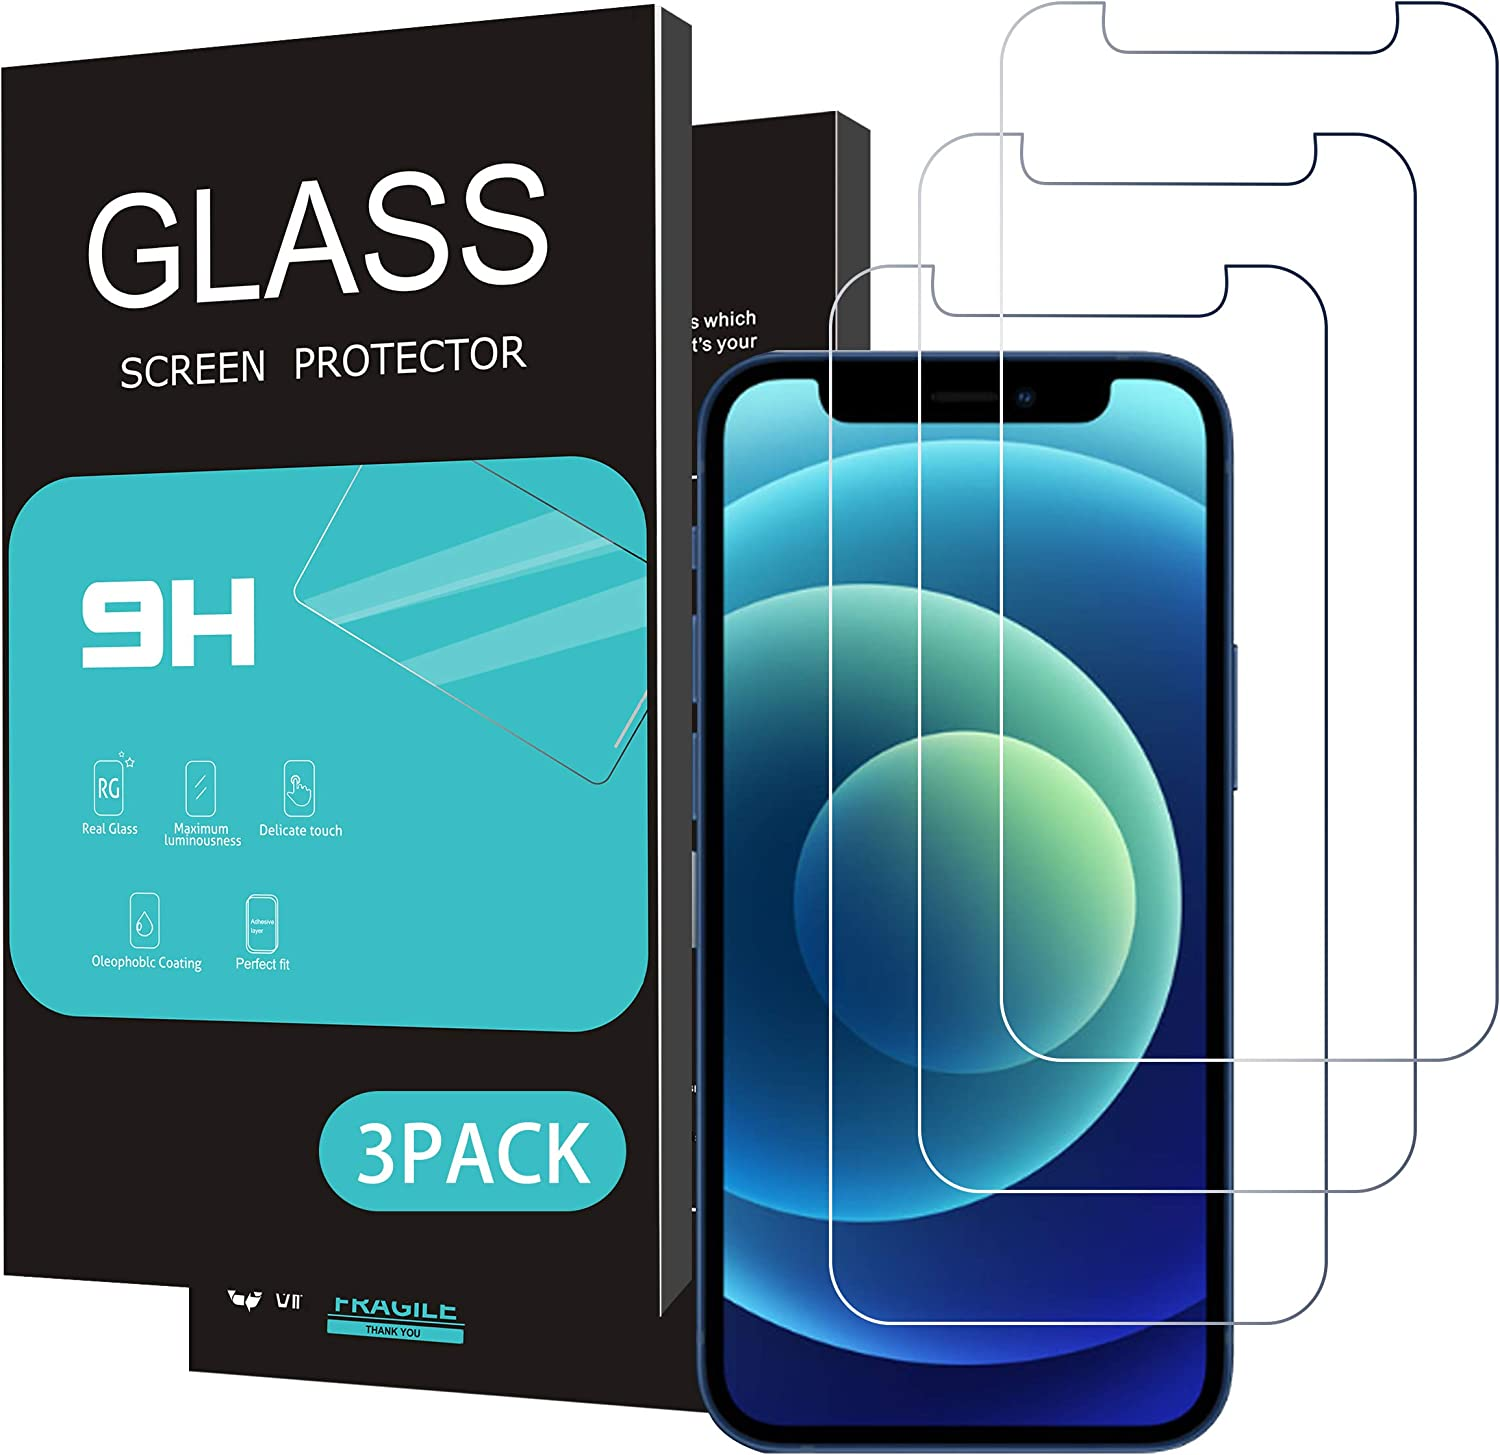 Homemo Glass Screen Protector Compatible for iPhone 12 mini 2020 5.4 Inch 3Pack Tempered Glass